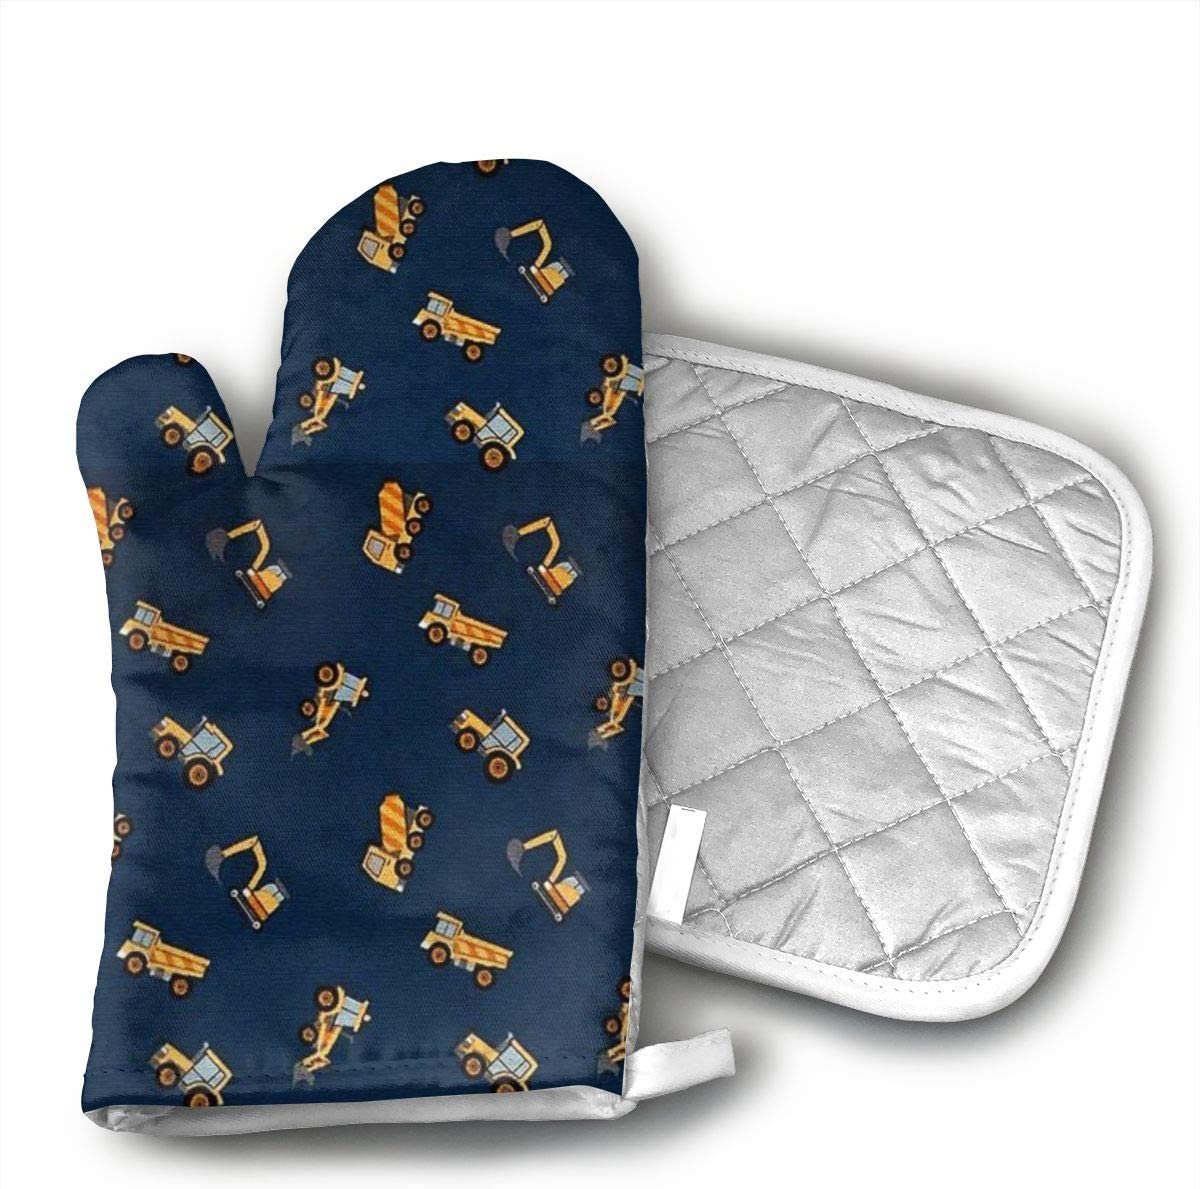 Star Blue Design Dump Truck Oven Mitts & Heat Resistant Pot Holder - with Polyester Cotton Non-Slip Grip, Best Used As Baking, Grilling, BBQ, Cooking, Kitchen Or Oven Gloves